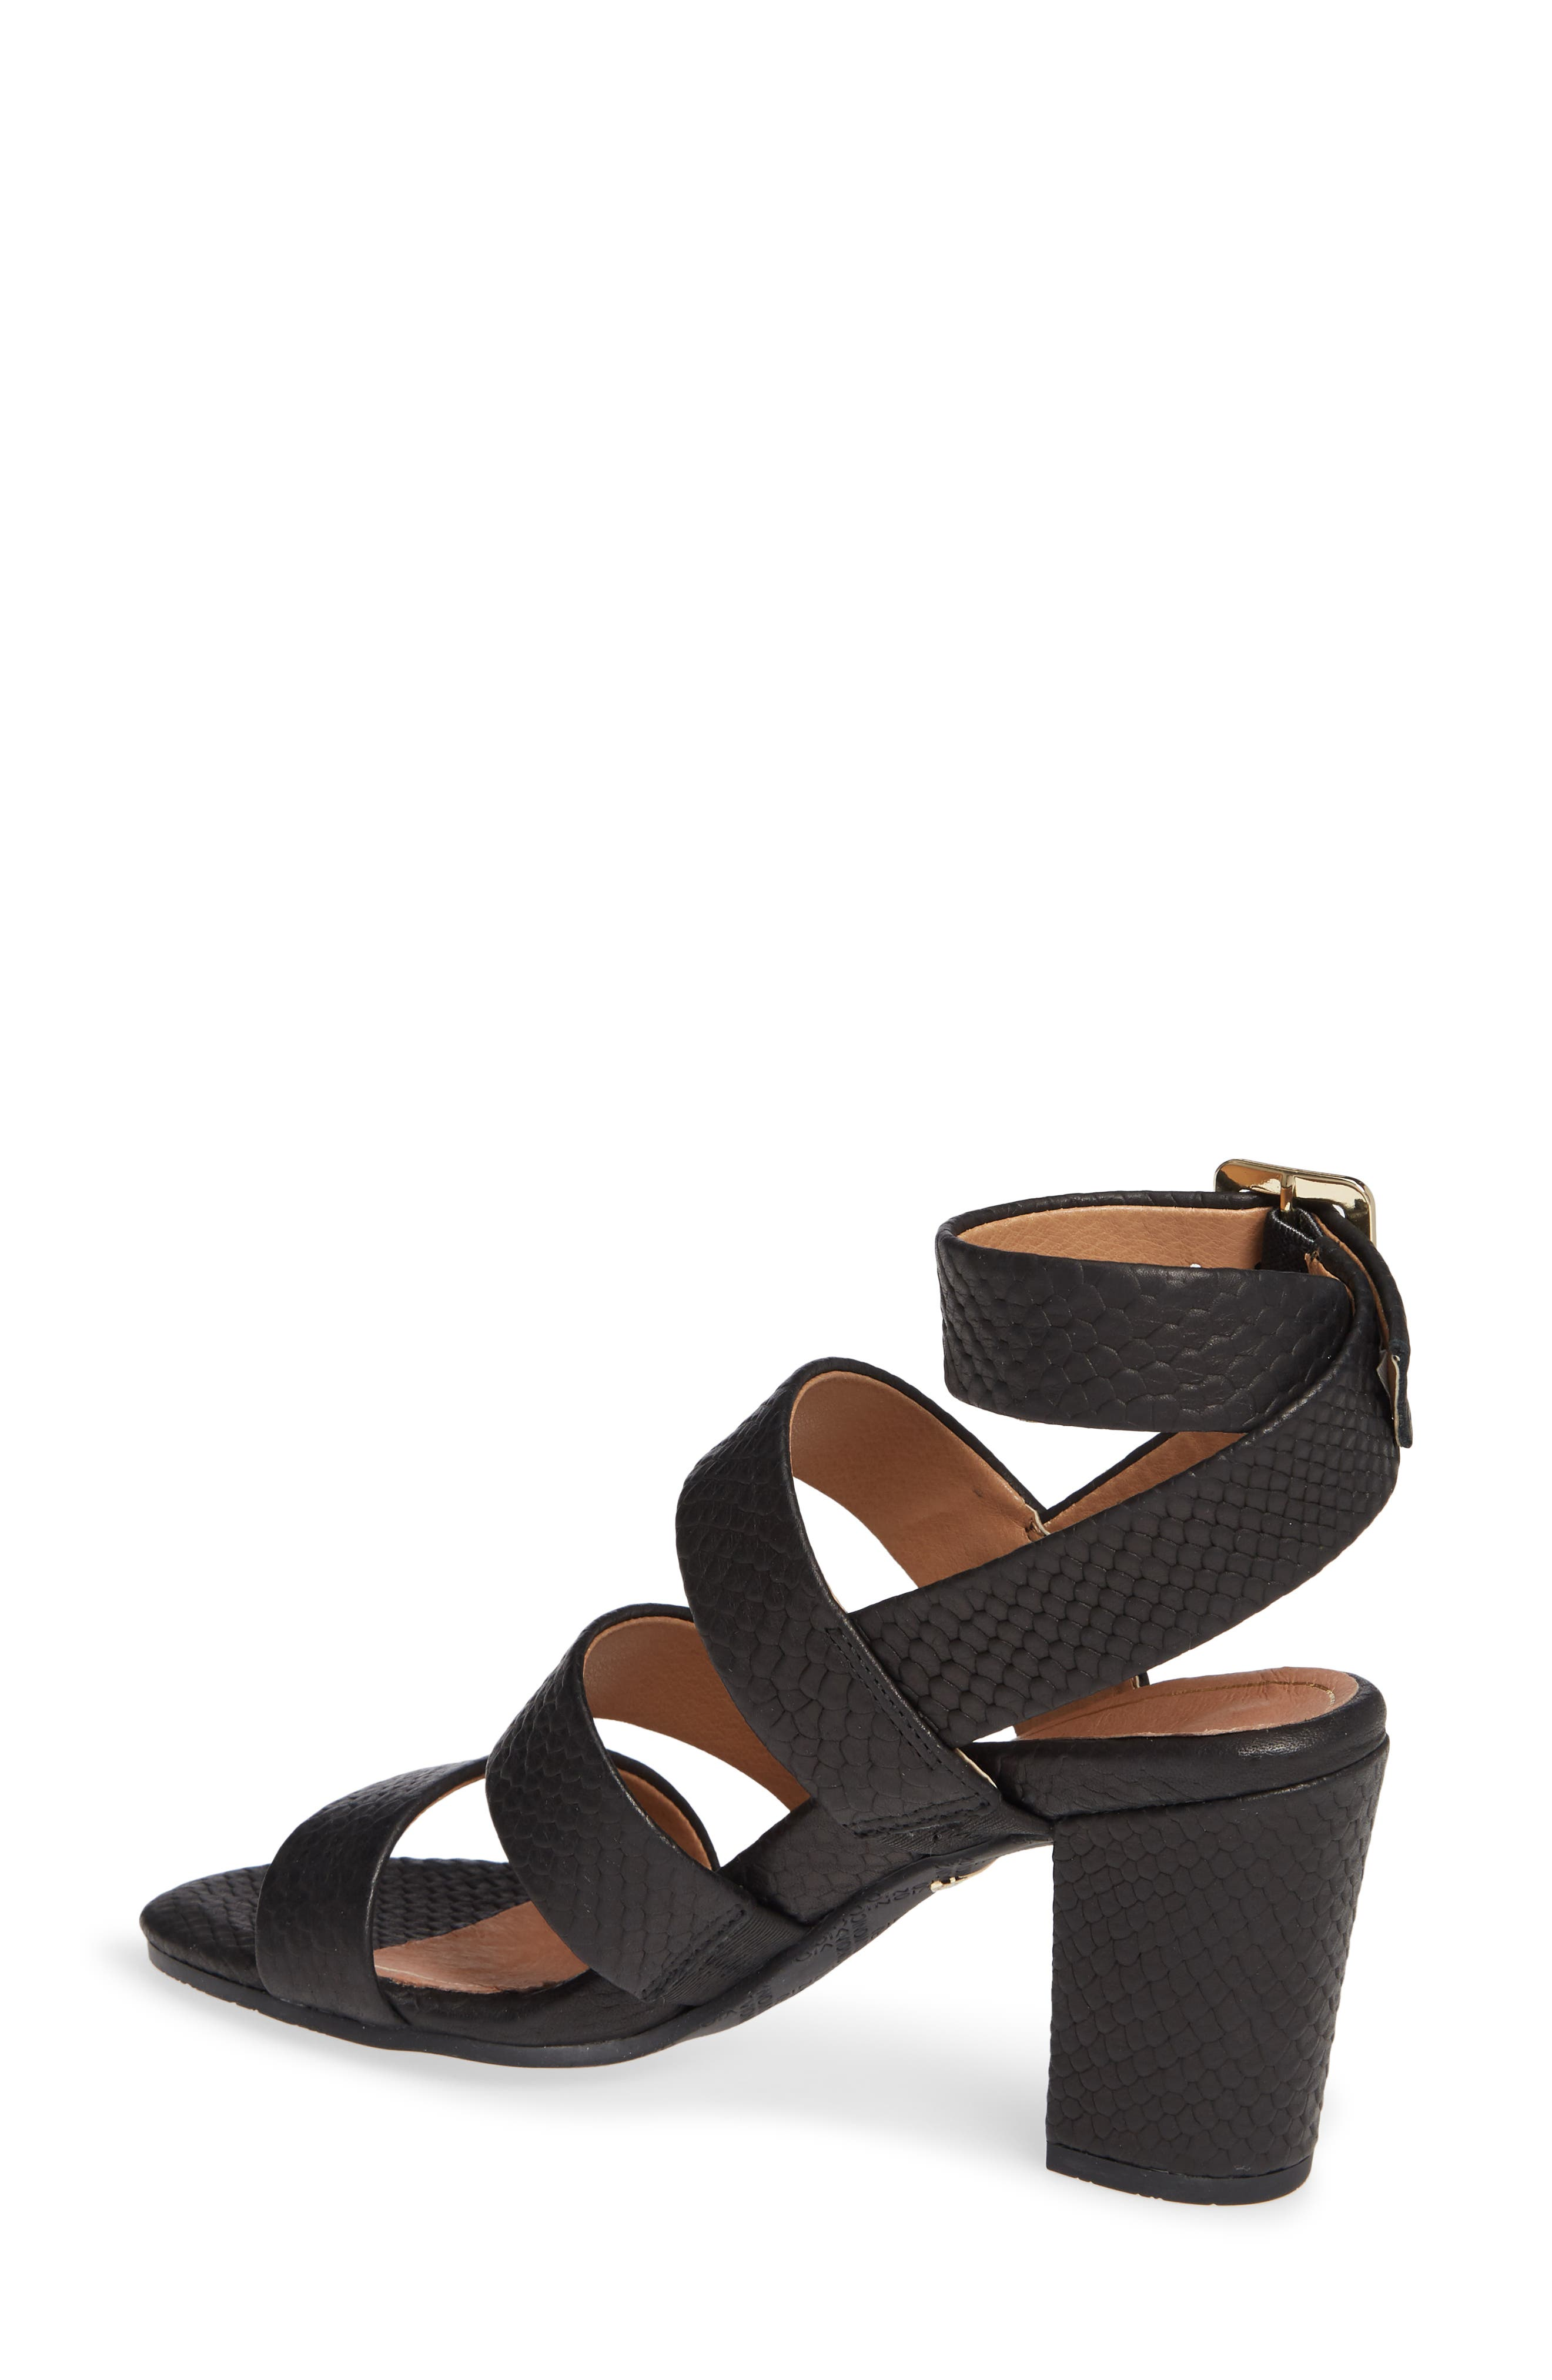 Blaire Block Heel Sandal,                             Alternate thumbnail 2, color,                             BLACK SNAKE EMBOSSED LEATHER